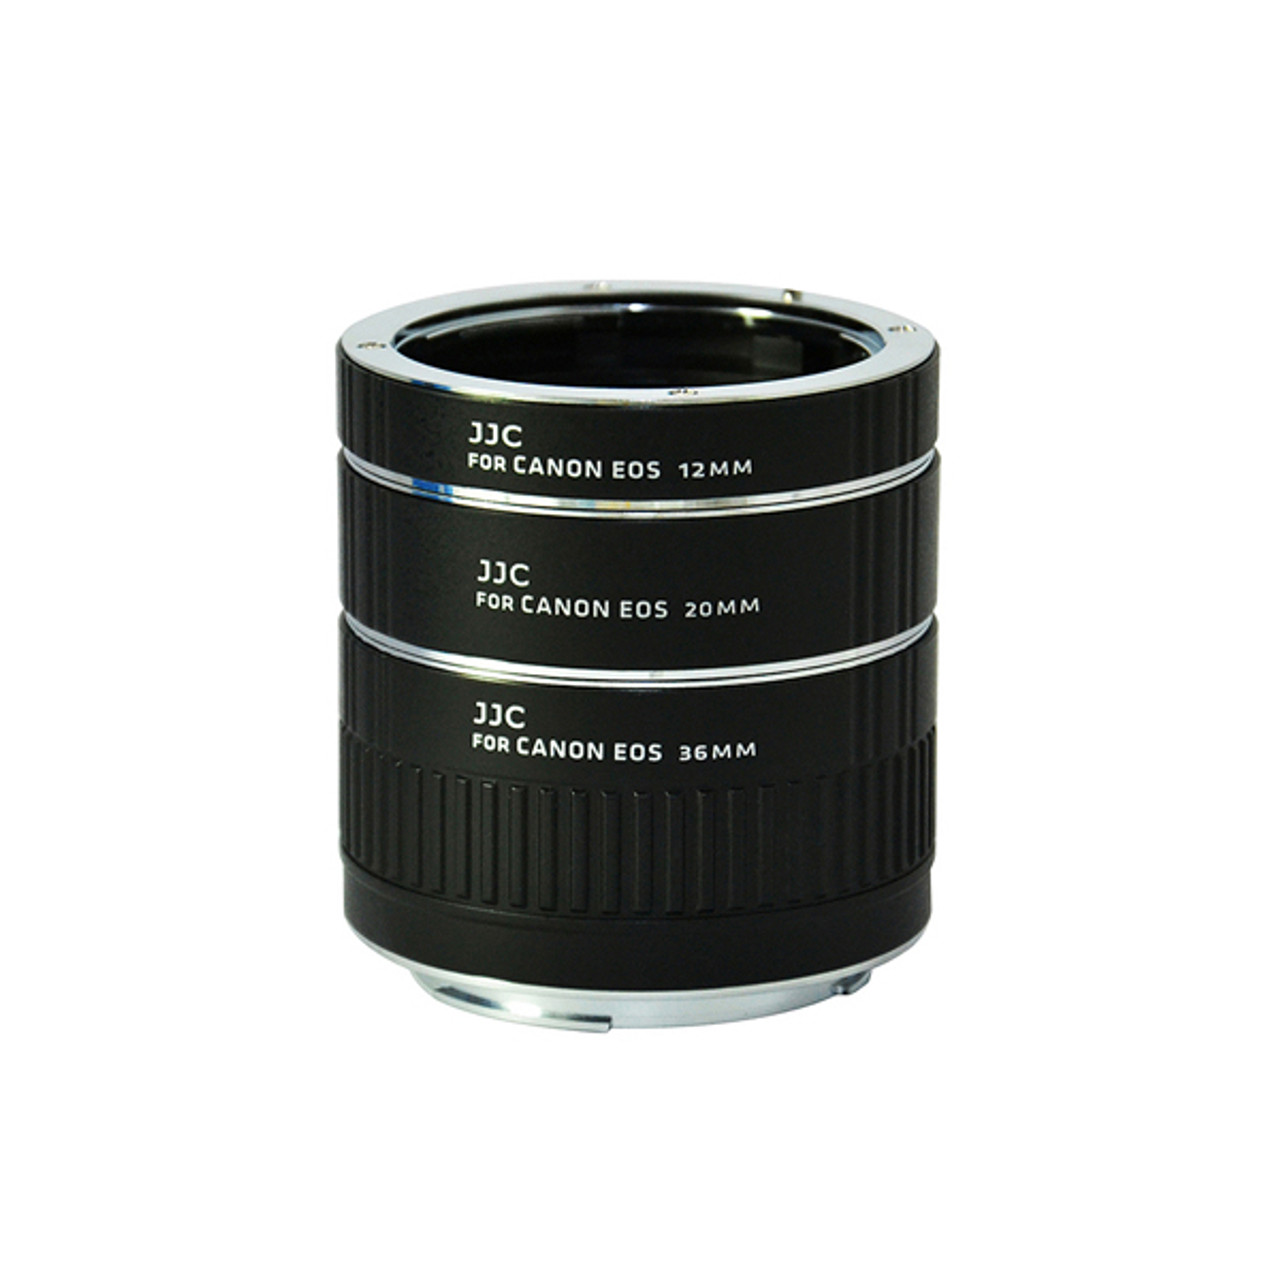 JJC Auto Focus Extension Tube for Canon EF Mount (12mm/20mm/36mm Set)